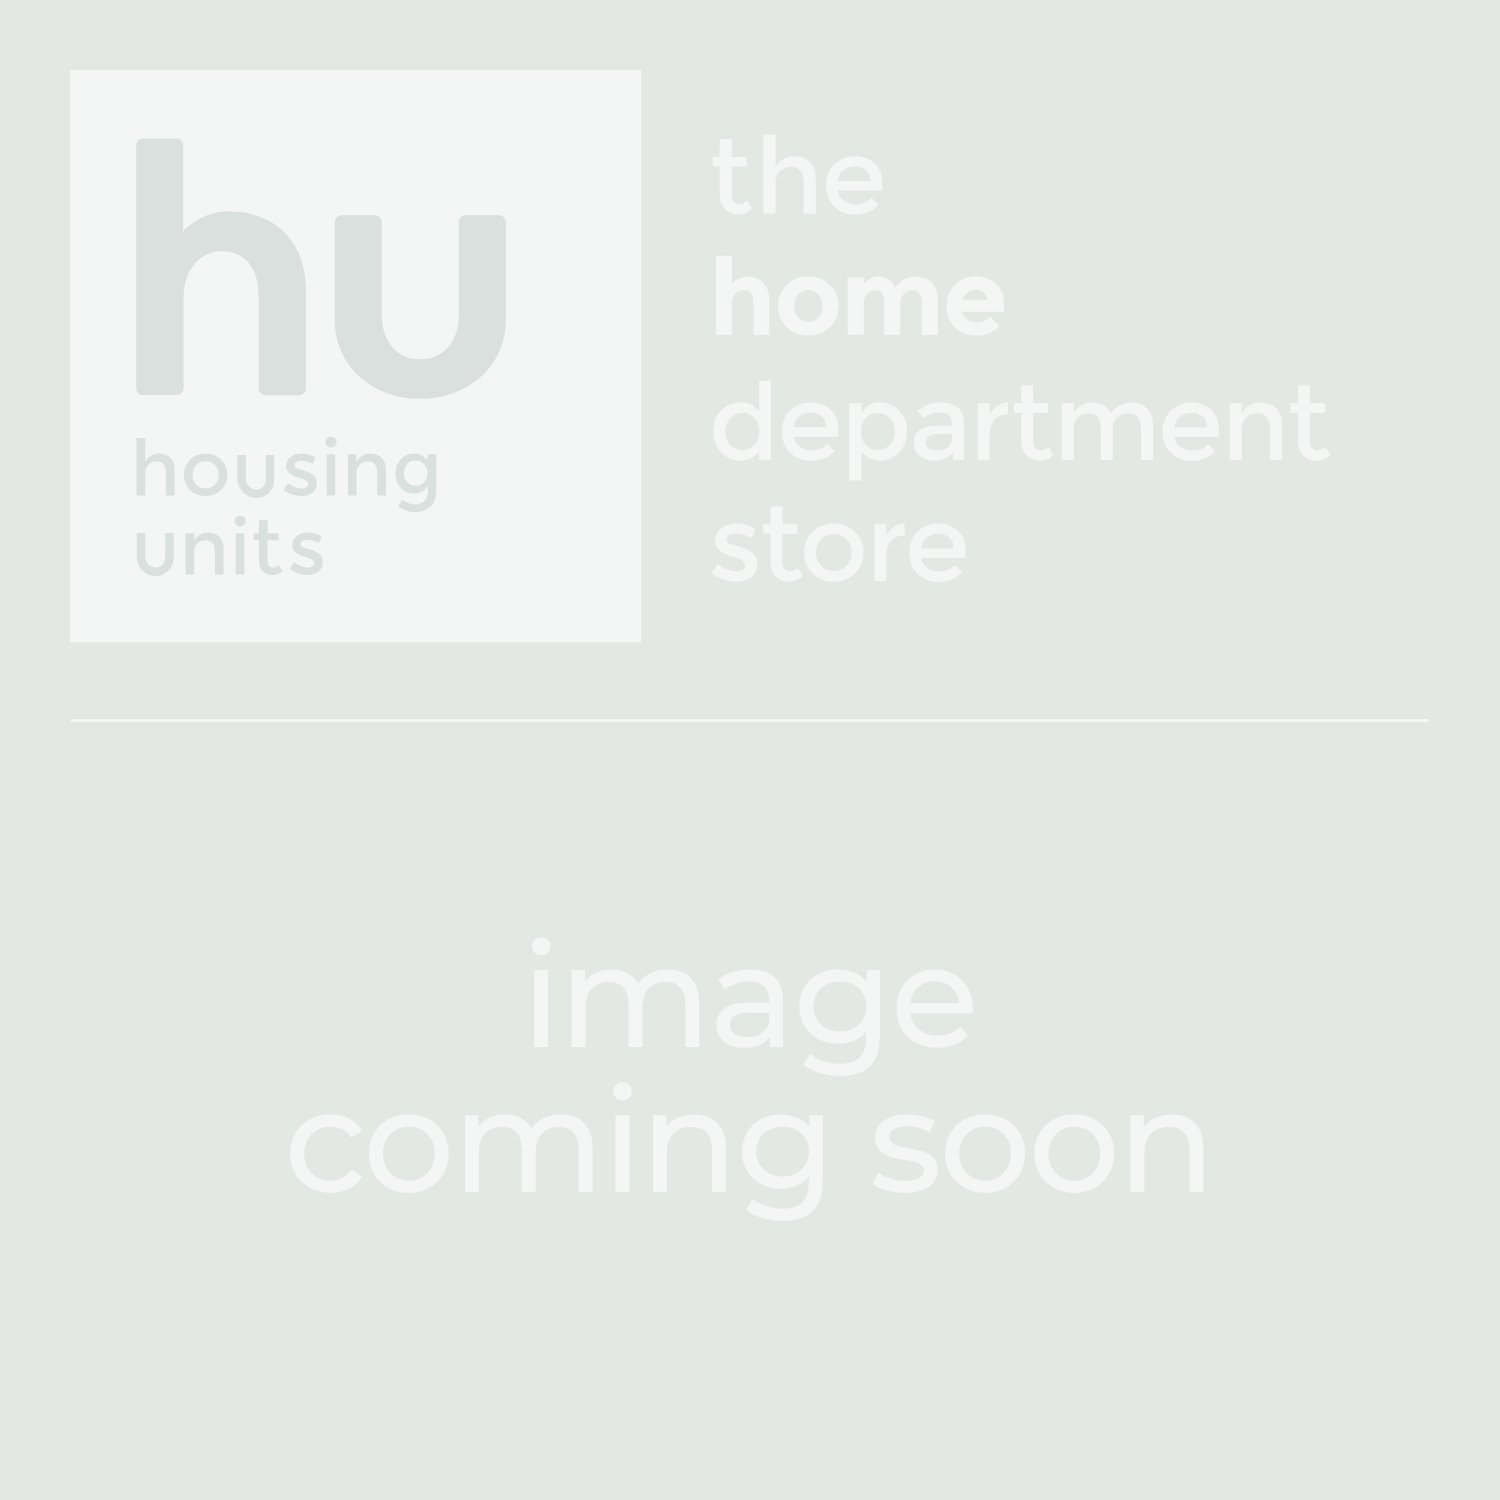 Ralph Extending Glass Top Dining Table With A Stone Effect Finish & 4 Toby Blue Velvet Upholstered Dining Chairs | Housing Units